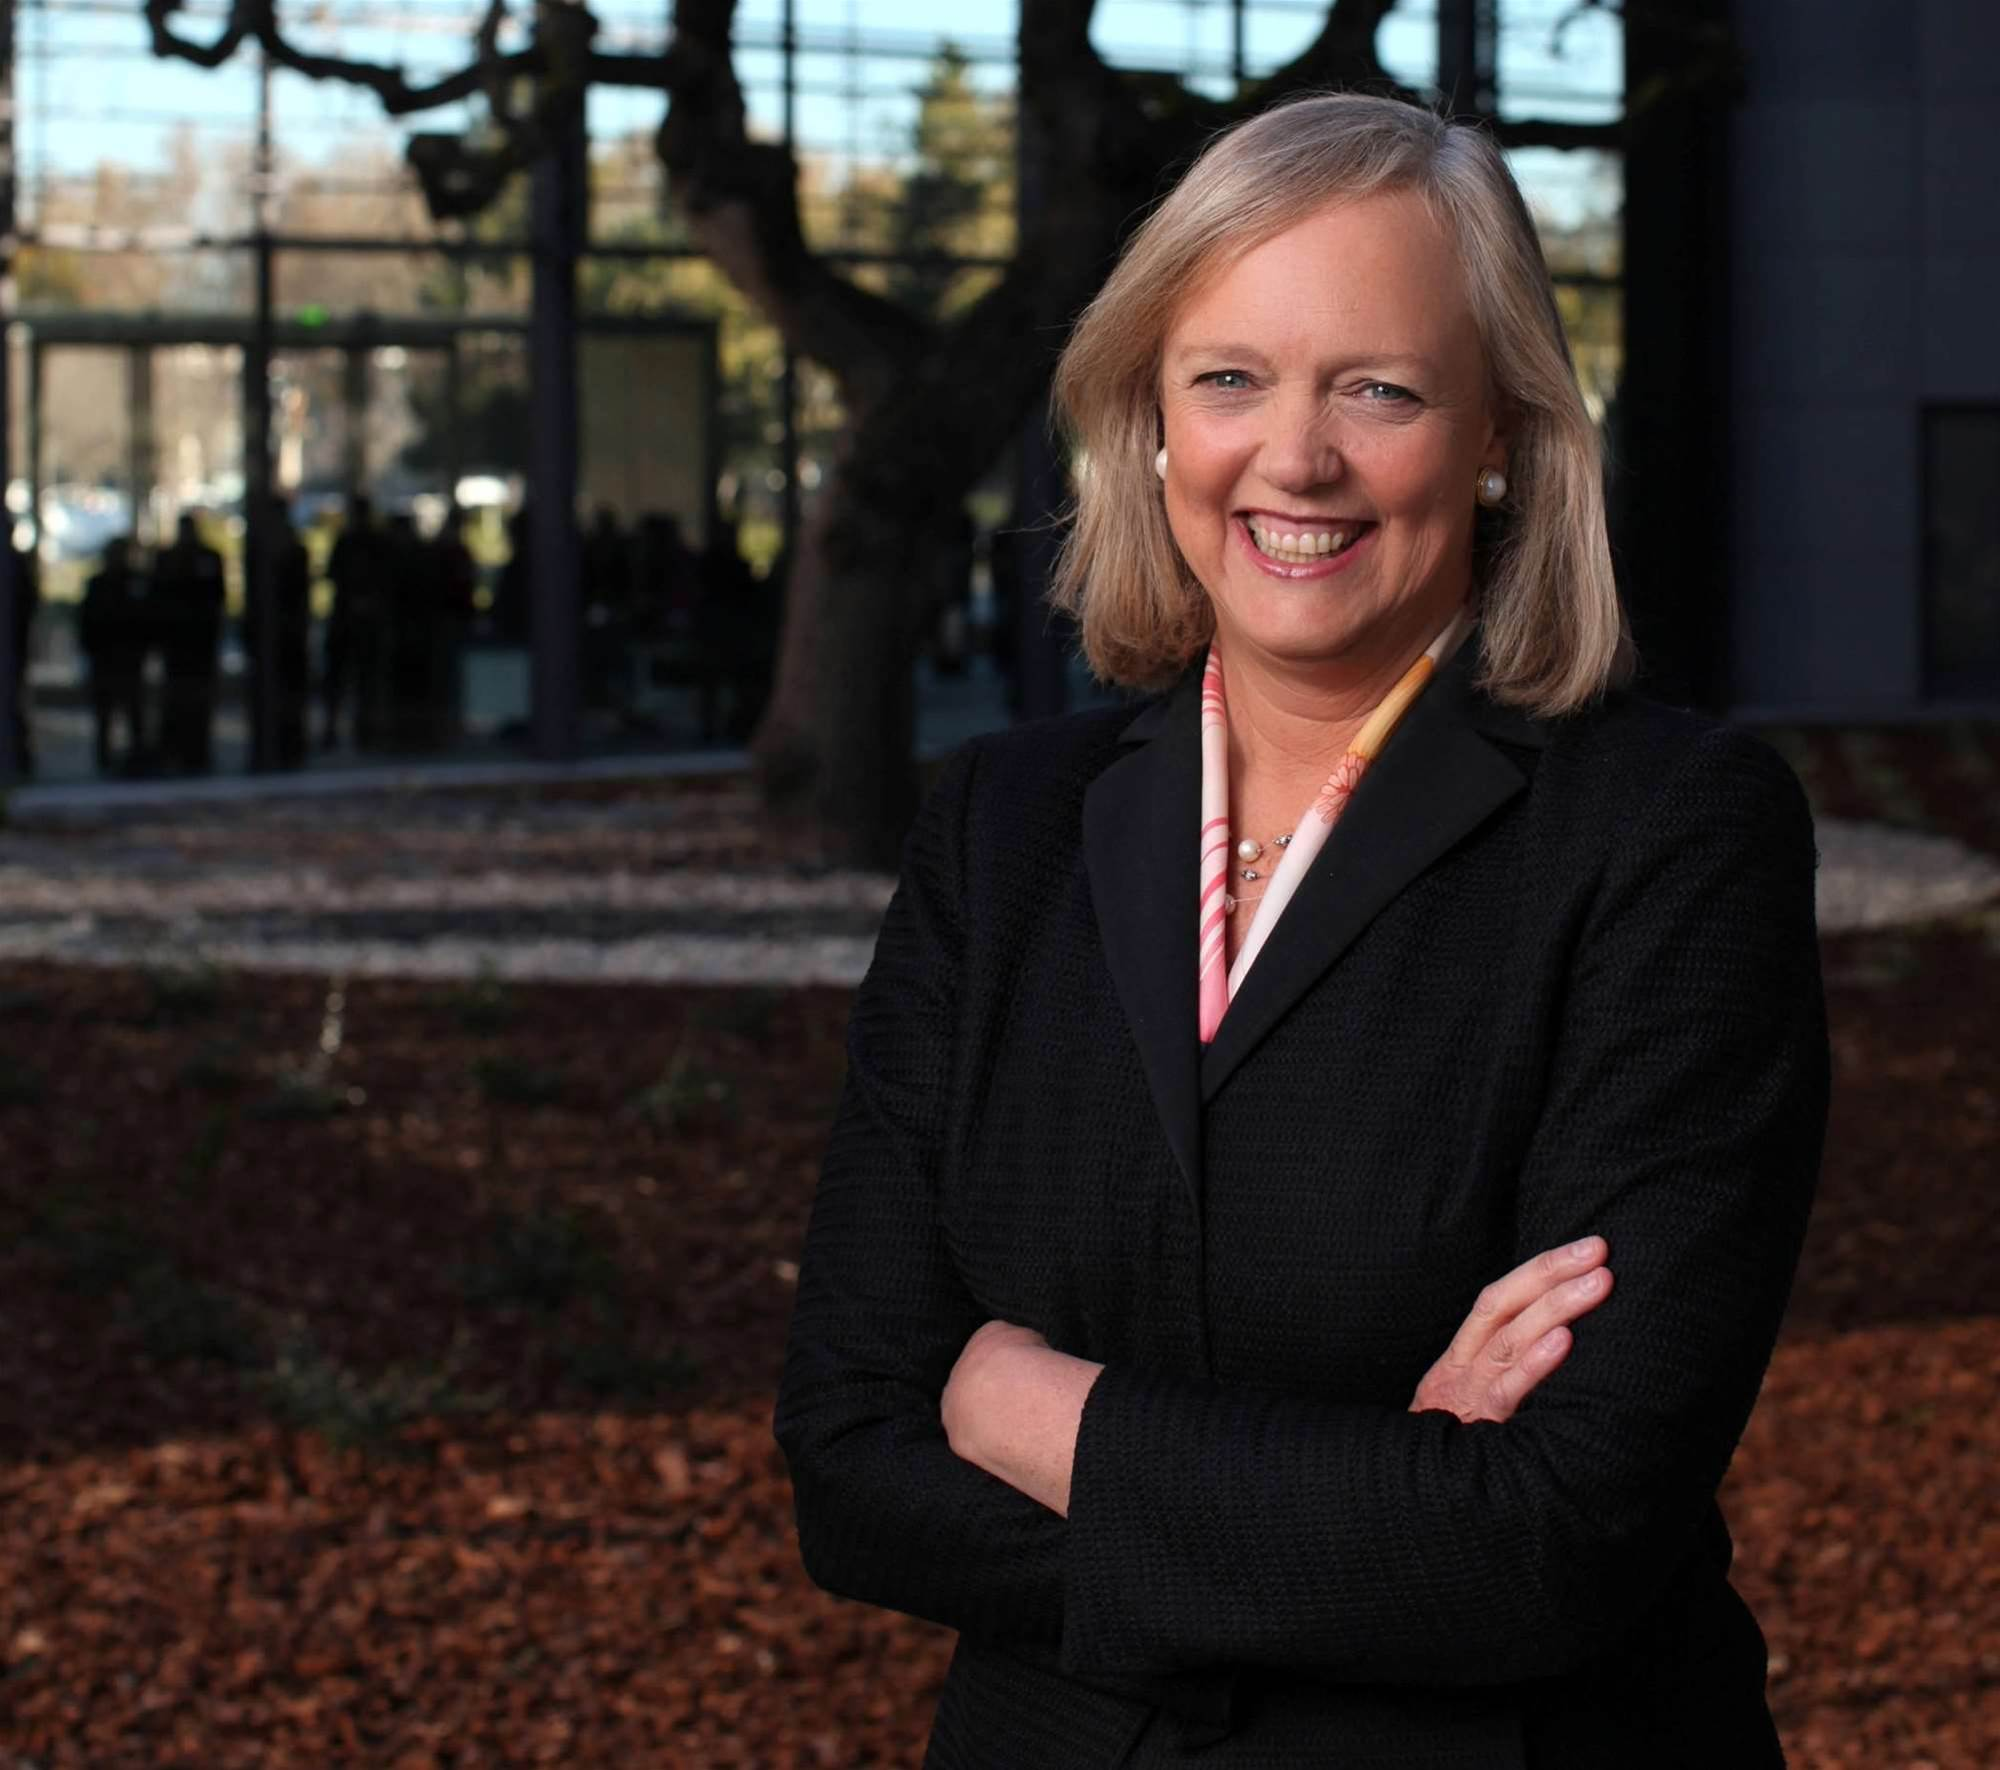 HP to split into two public companies